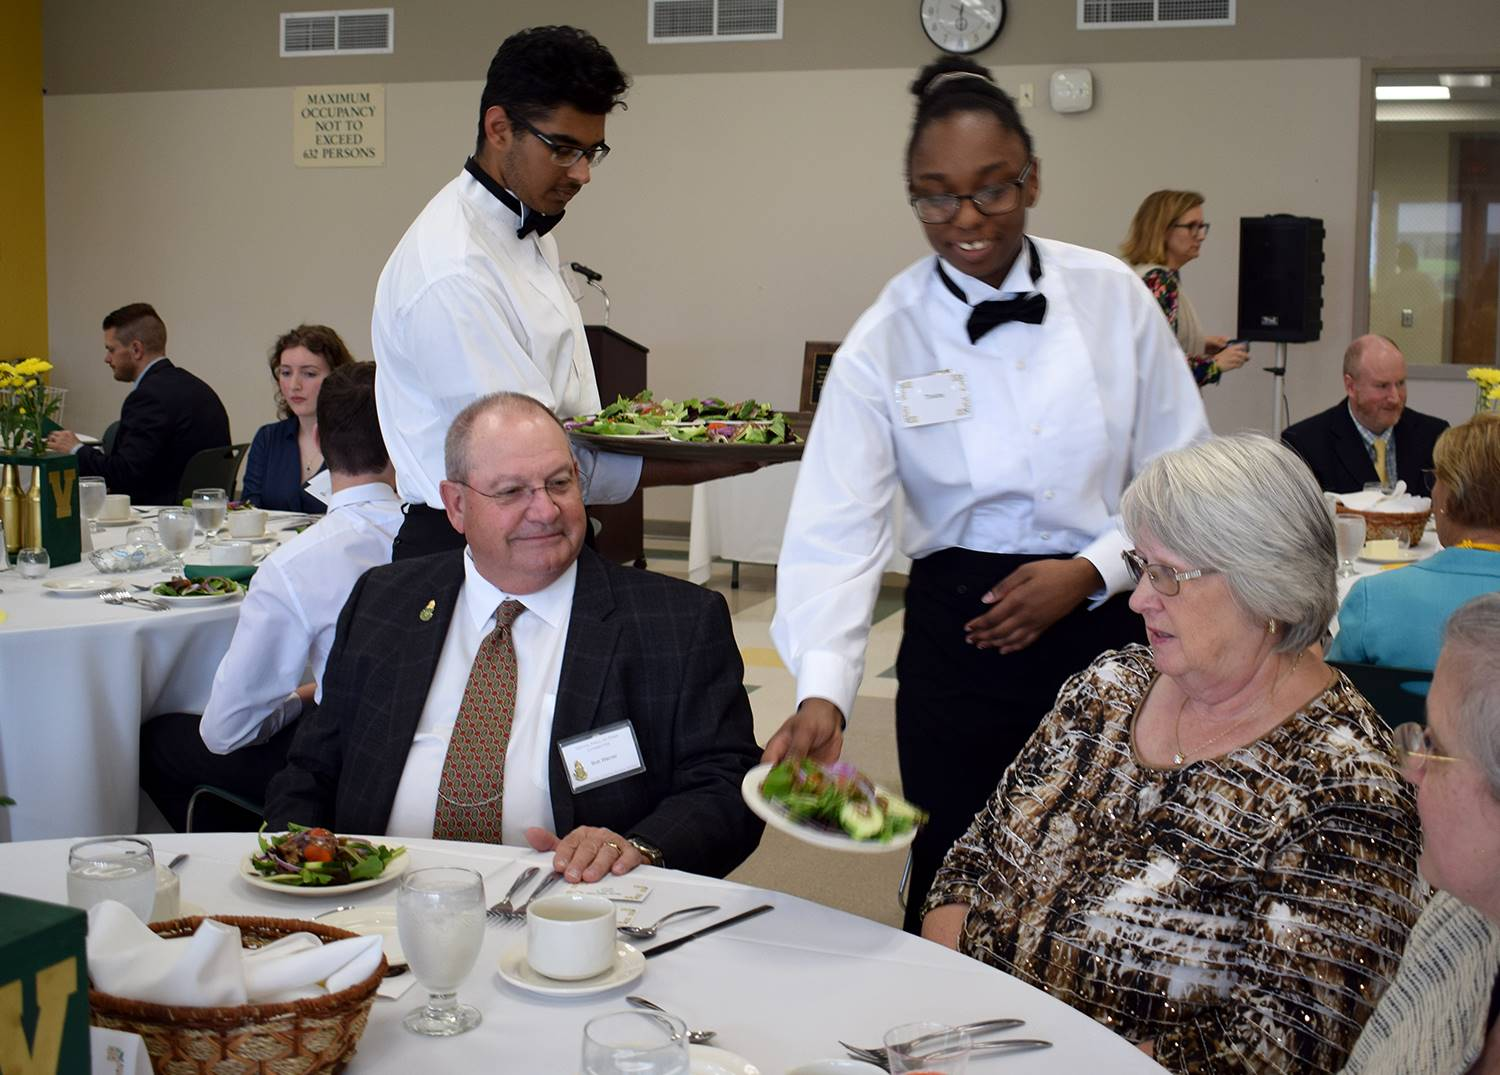 Two student waiters serve guests at the Vestal Hall of Fame Dinner on May 1, 2019.